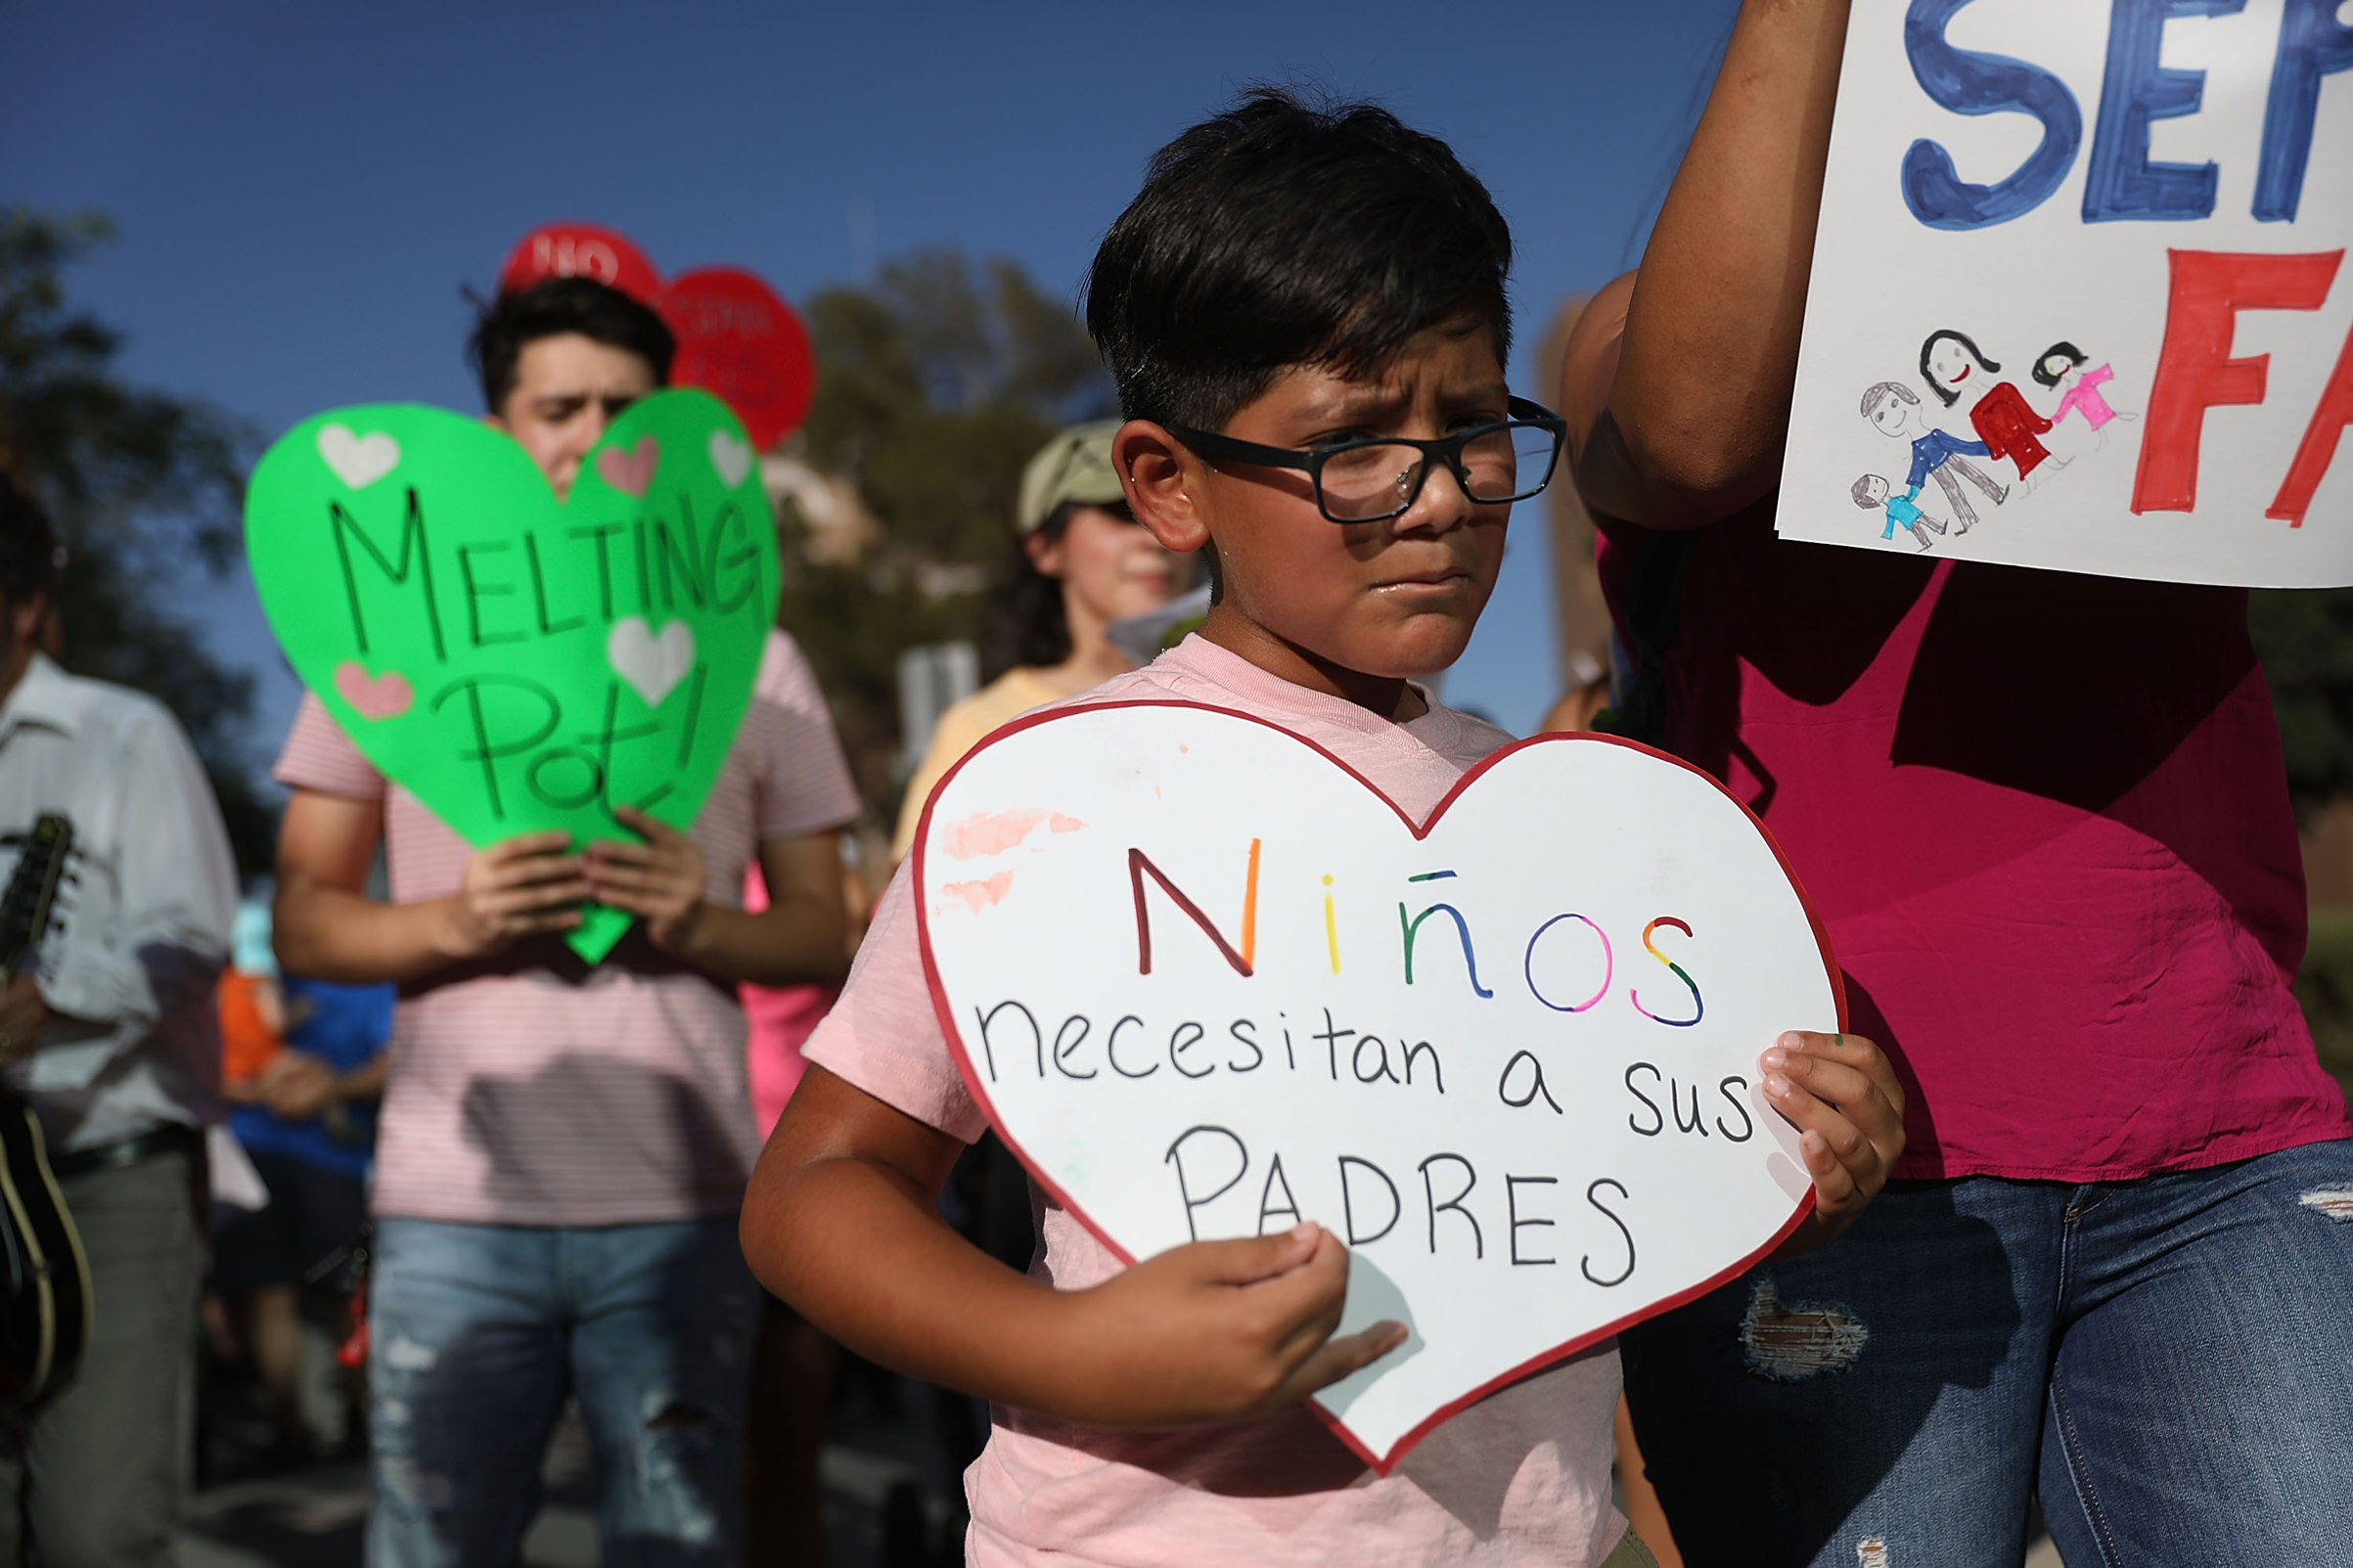 Protesters walk though the streets as they protest against the Trump administration's immigration policies on June 21, 2018 in El Paso, Texas.